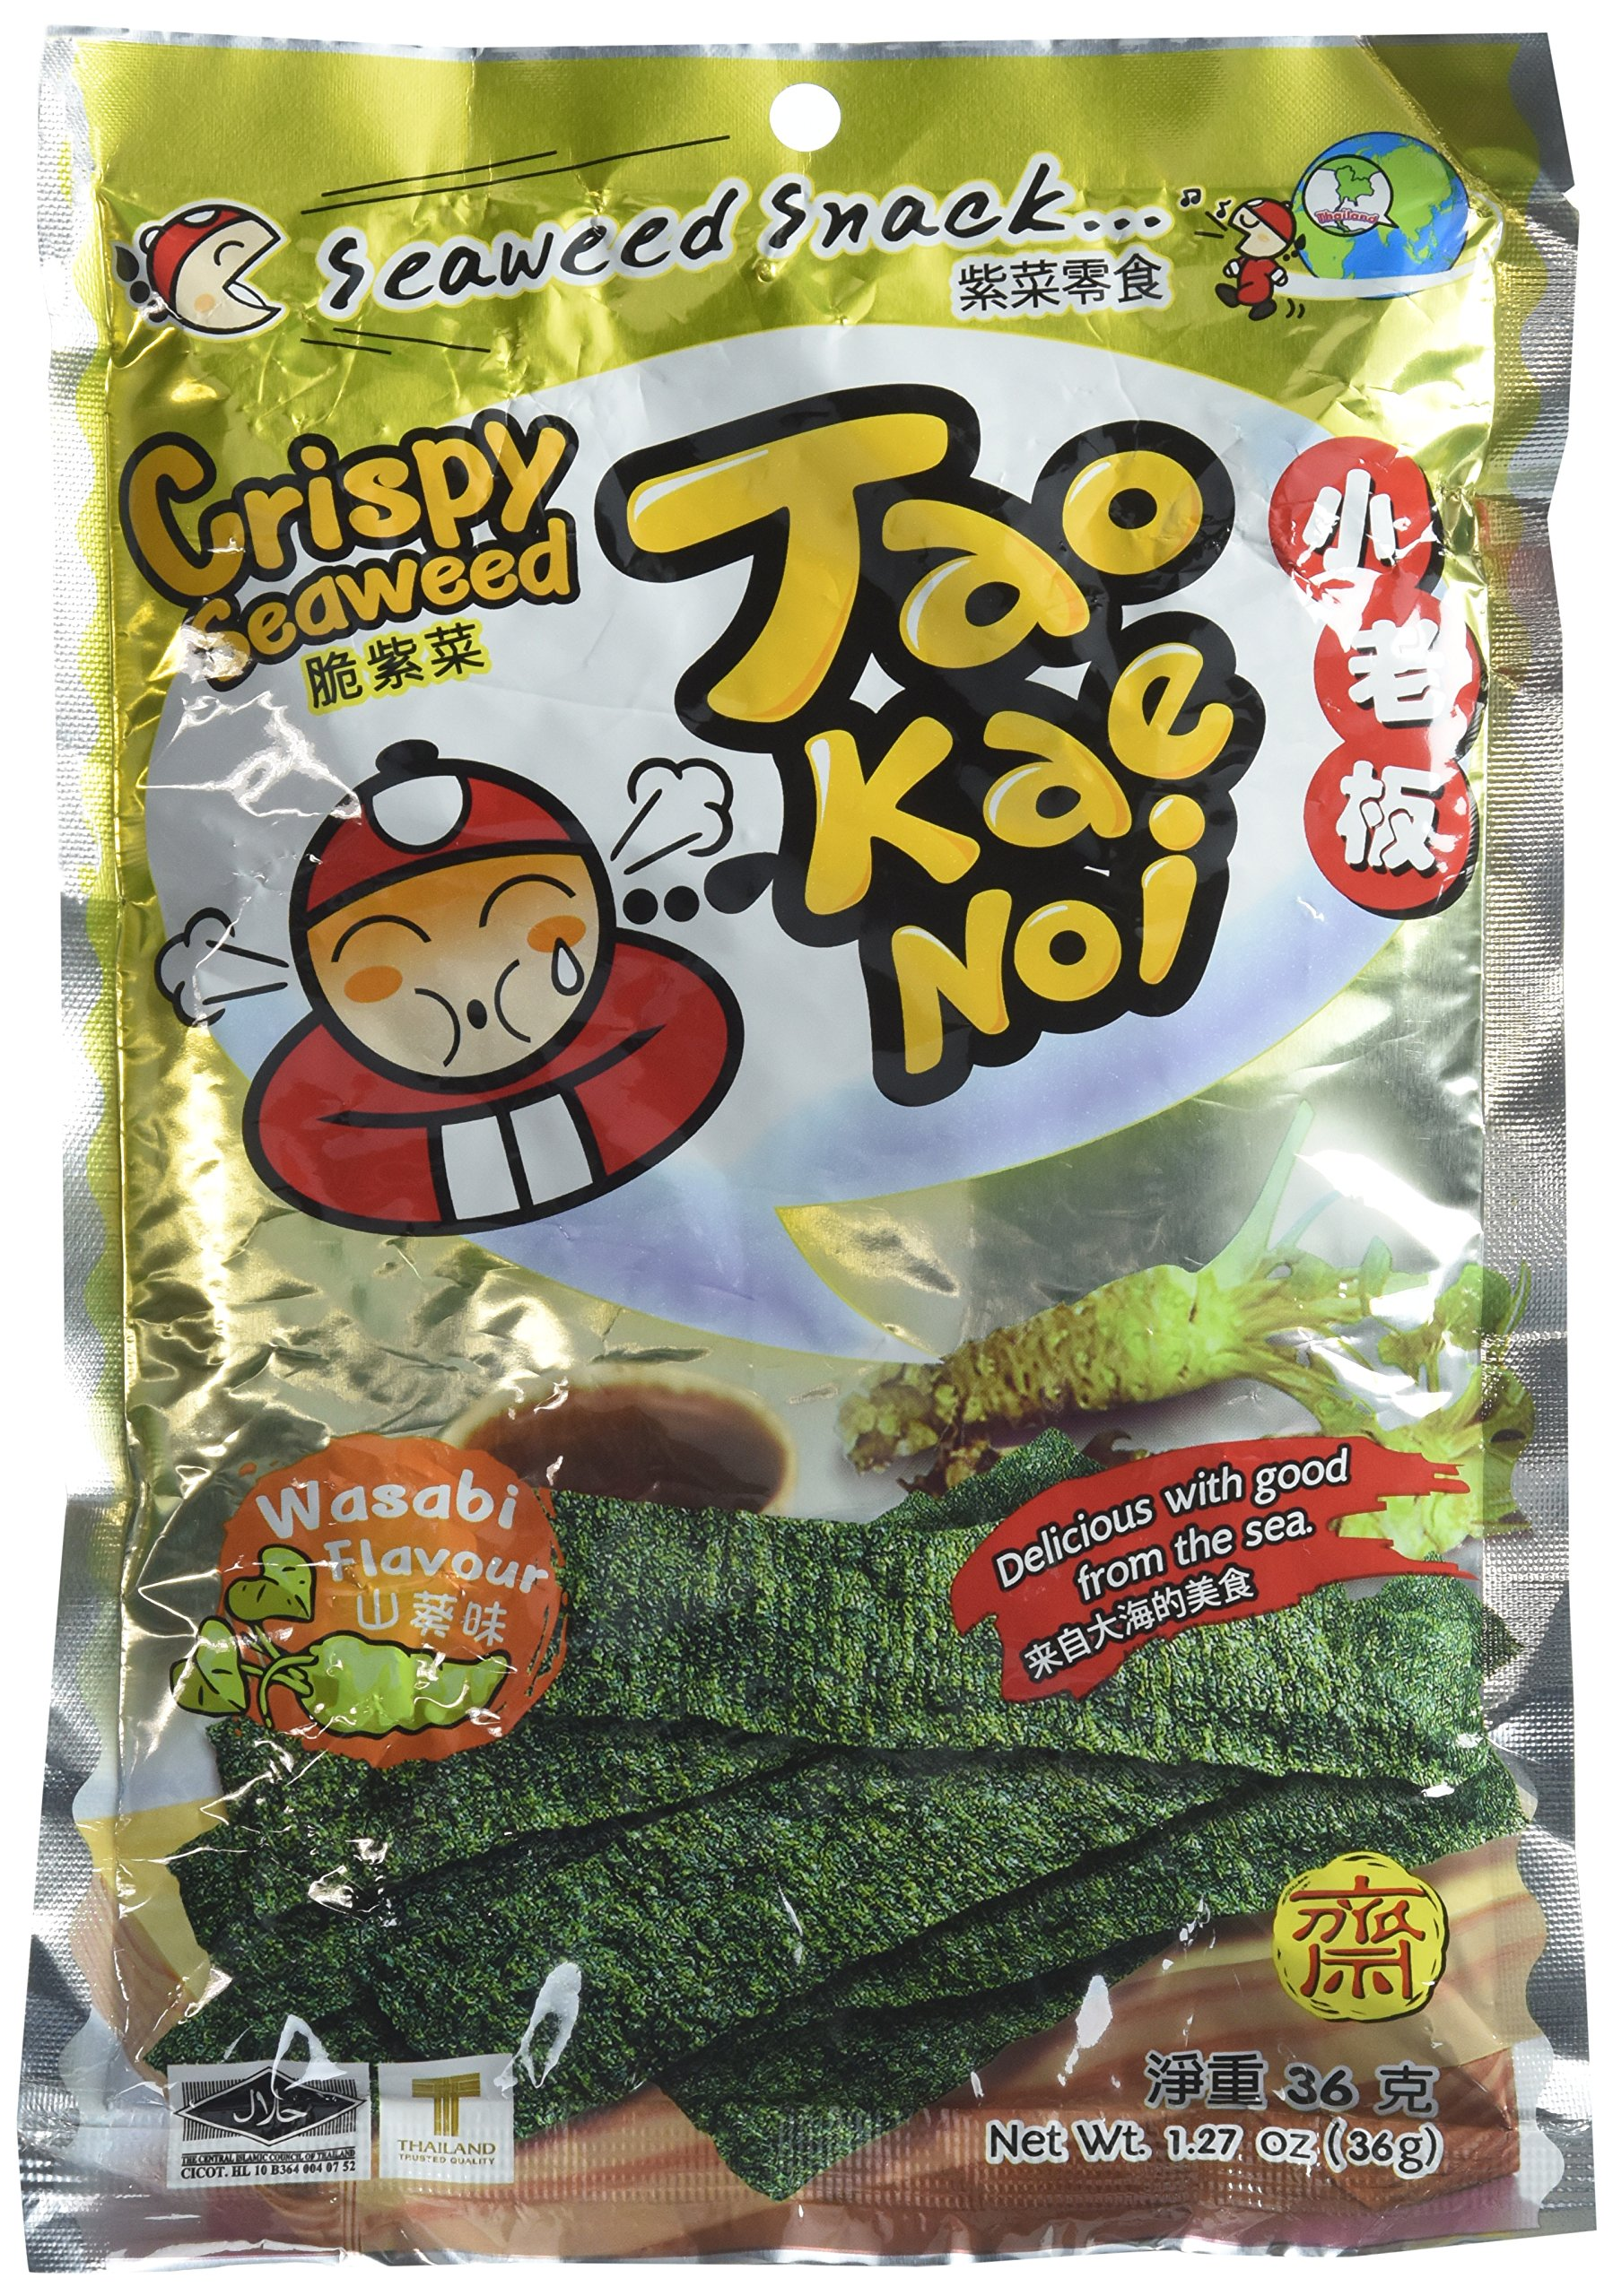 tao kae noi crispy seaweed snack tom yum spicy flavor thai amazon